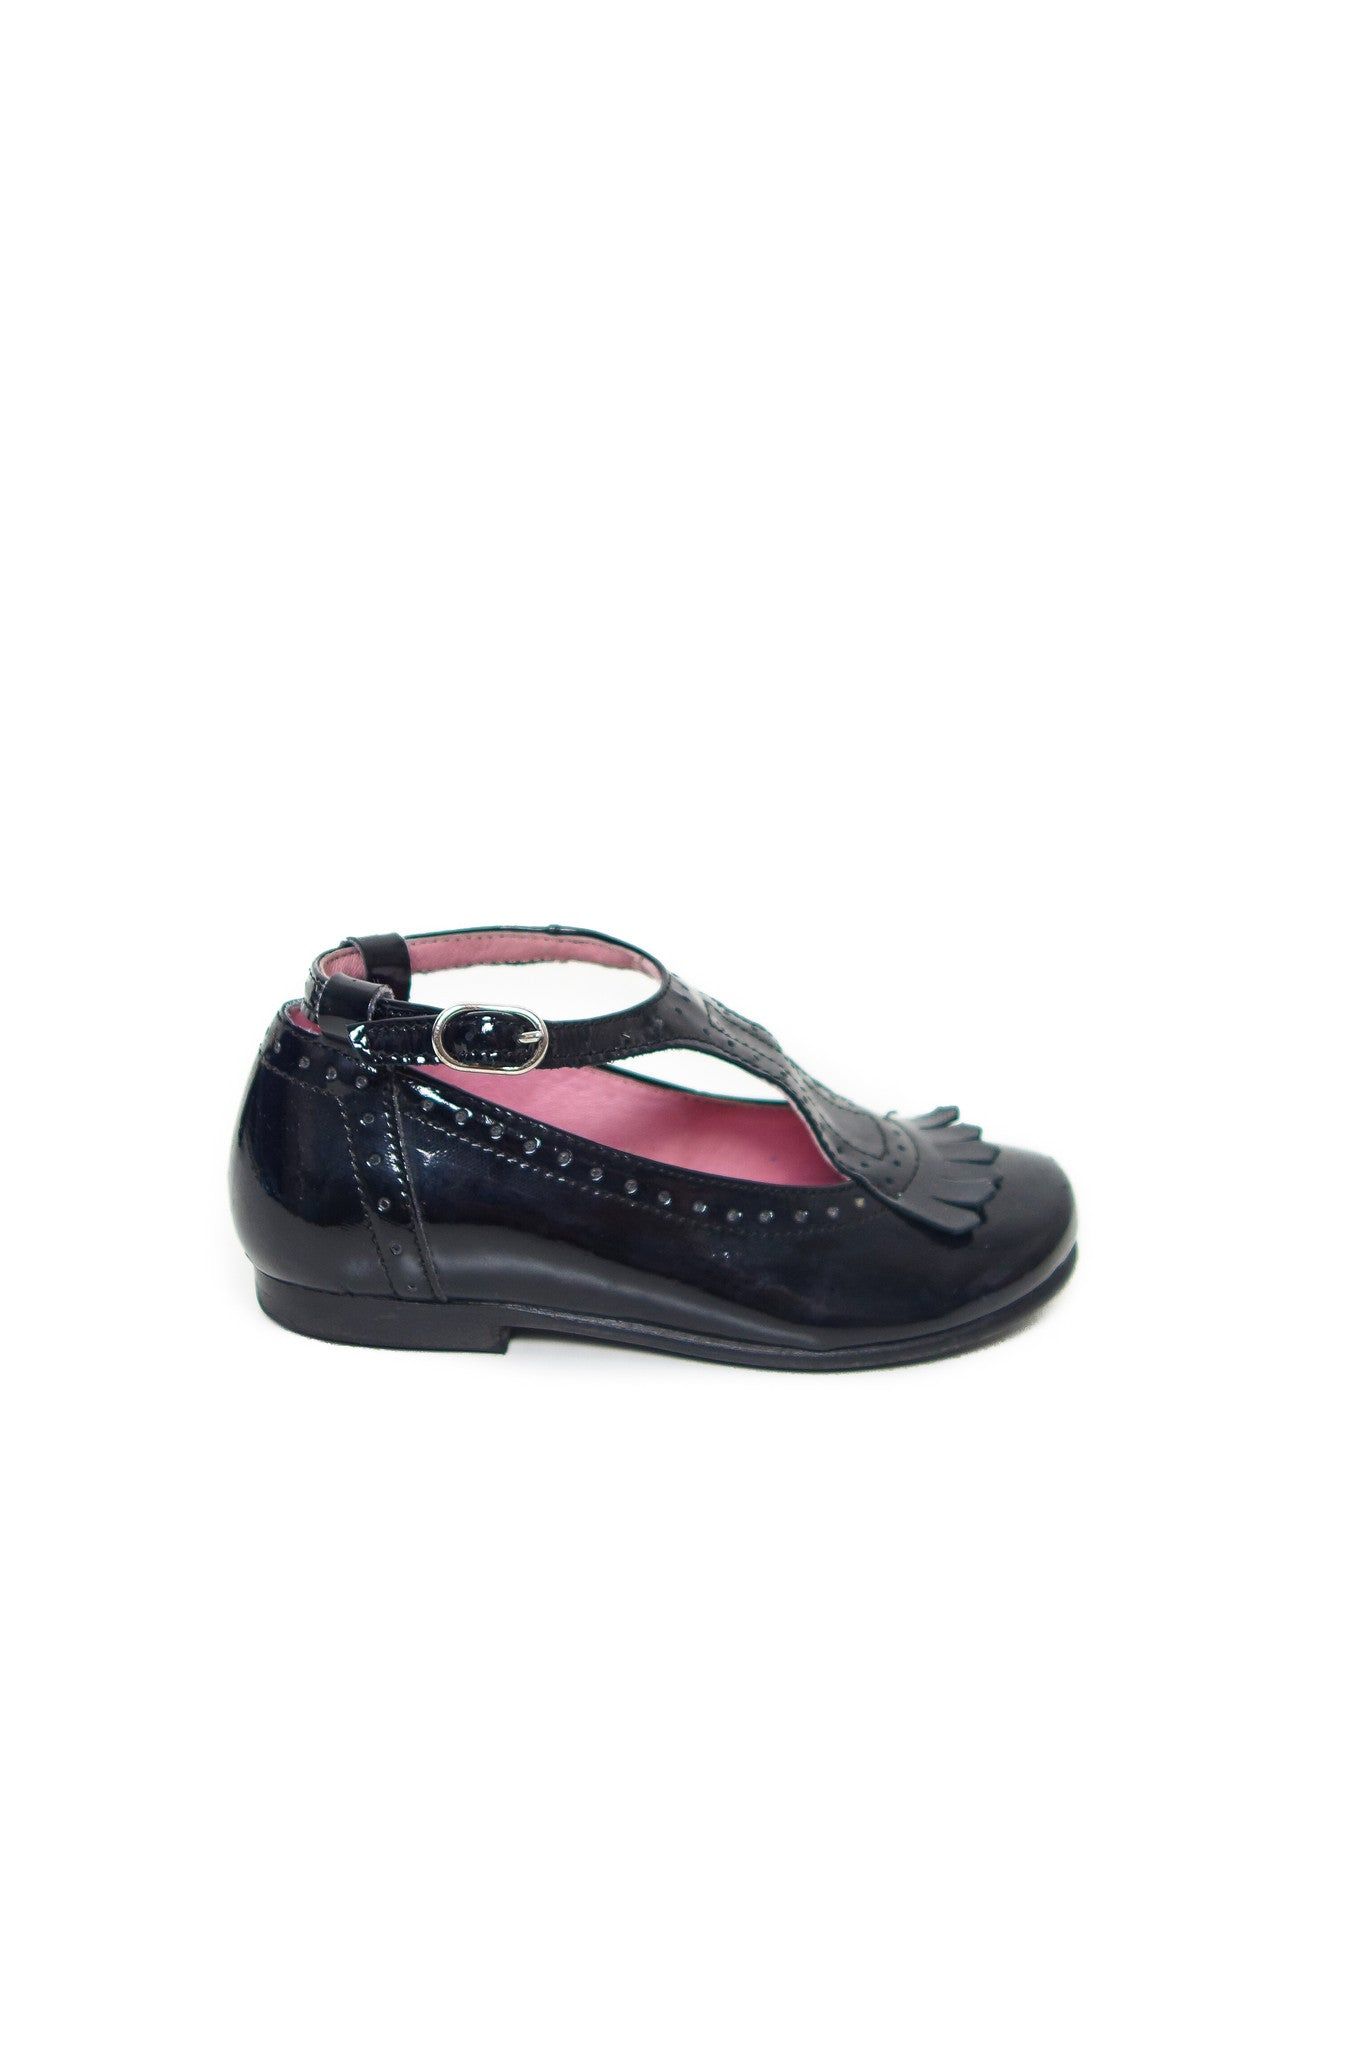 10002802 Jacadi Kids~Shoes 3T (EU 25) at Retykle